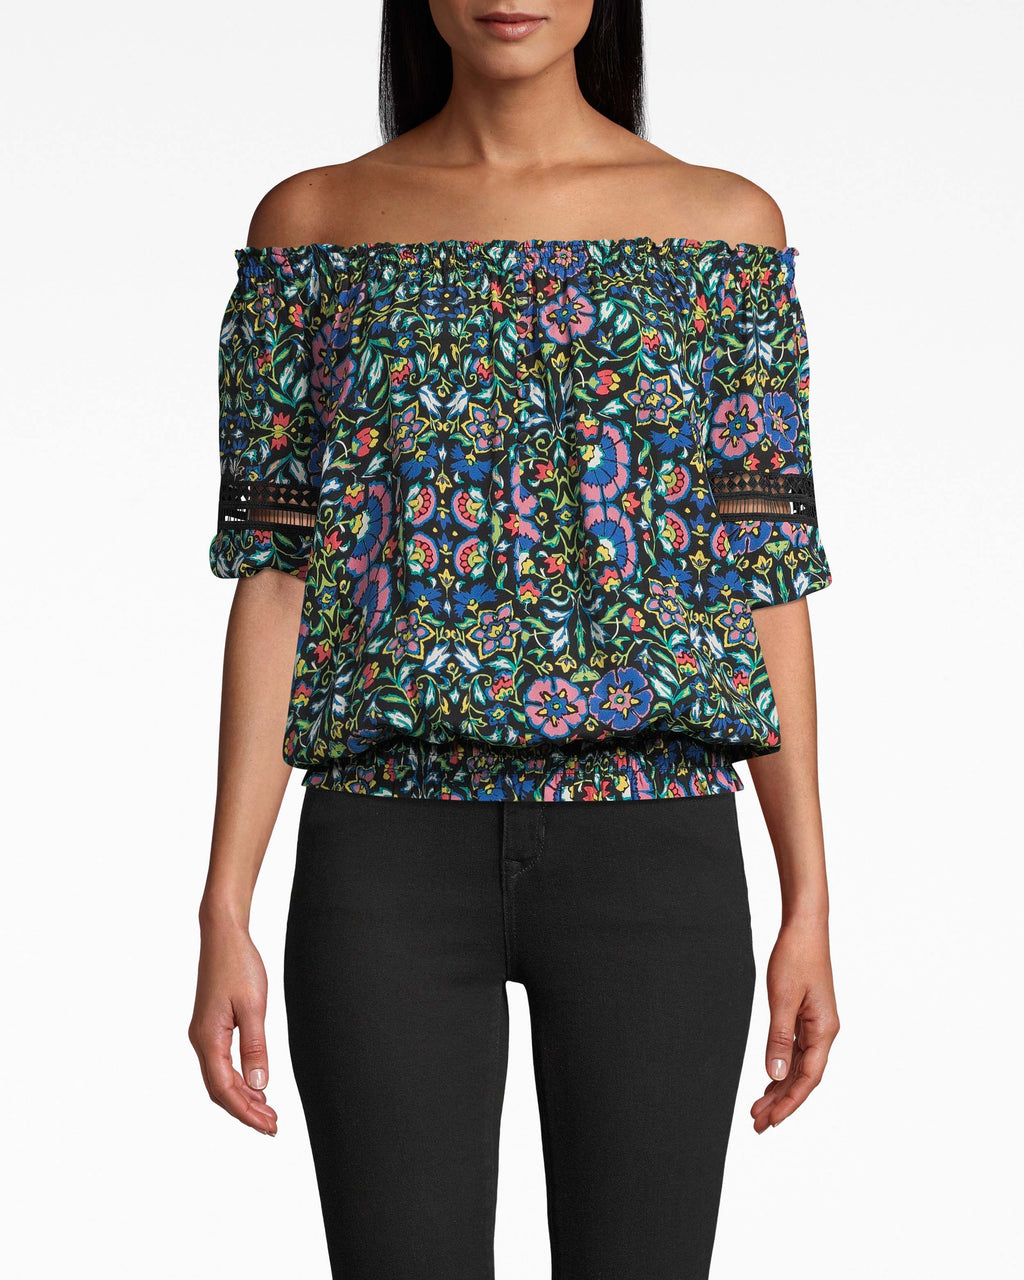 CT17984 - MOSAIC SILK OFF THE SHOULDER SMOCKED TOP - tops - shirts - DESIGNED IN OUR NEW MOSAIC PRINT, THIS CLASSIC OFF THE SHOULDER TOP HAS LACE TRIM ON THE SLEEVES AND A SMOCKED WAISTLINE. MADE FROM LIGHTWEIGHT SILK. Add 1 line break STYLIST TIP: WEAR WITH LIGHTWASH DENIM IN THE SUMMER AND DARK DENIM IN THE FALL.